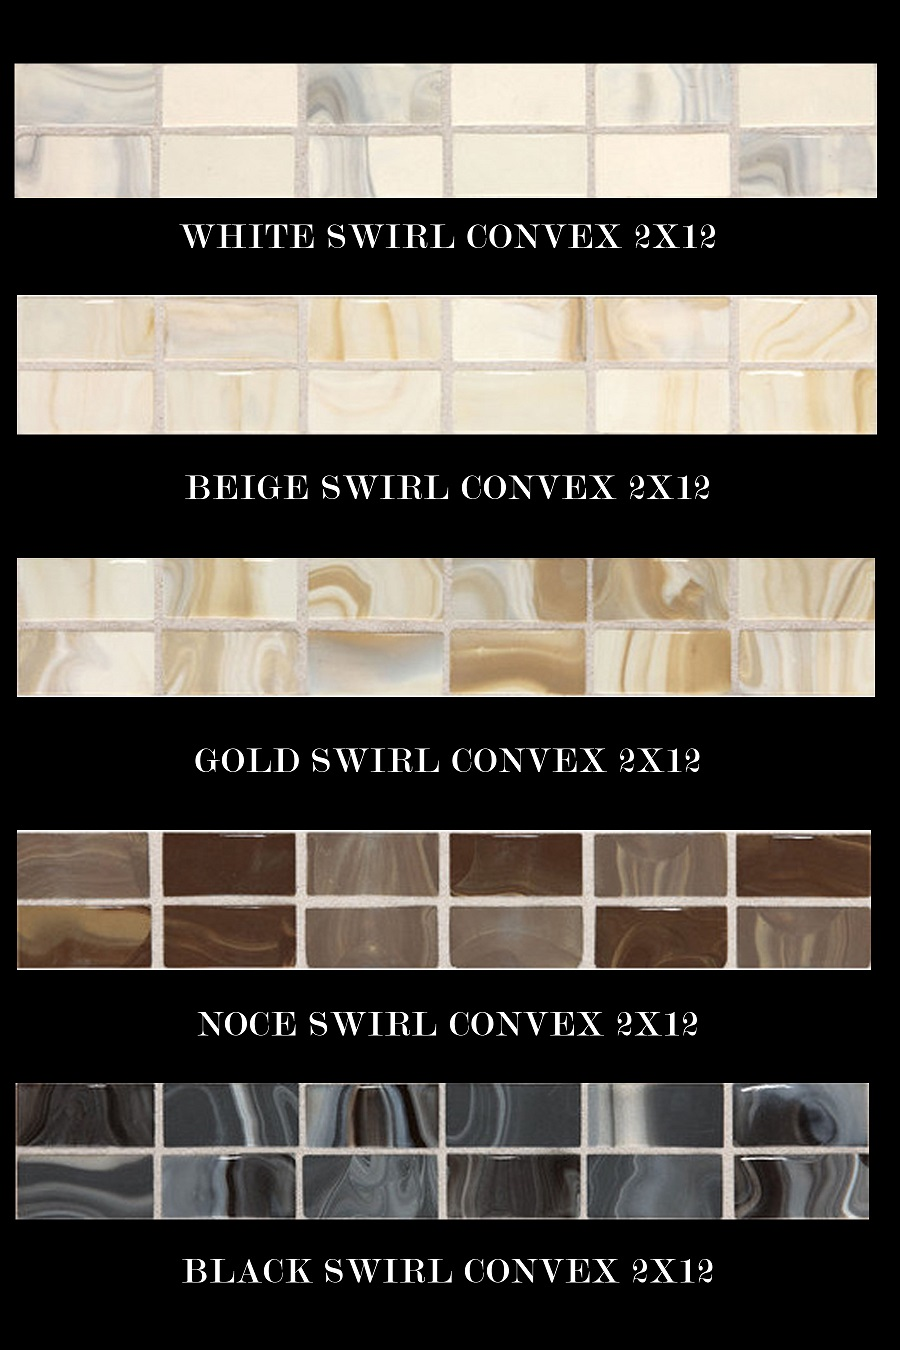 Provincial 2x12 accent strip daltile fashion accents white beige gold noce black marble swirls movement soft